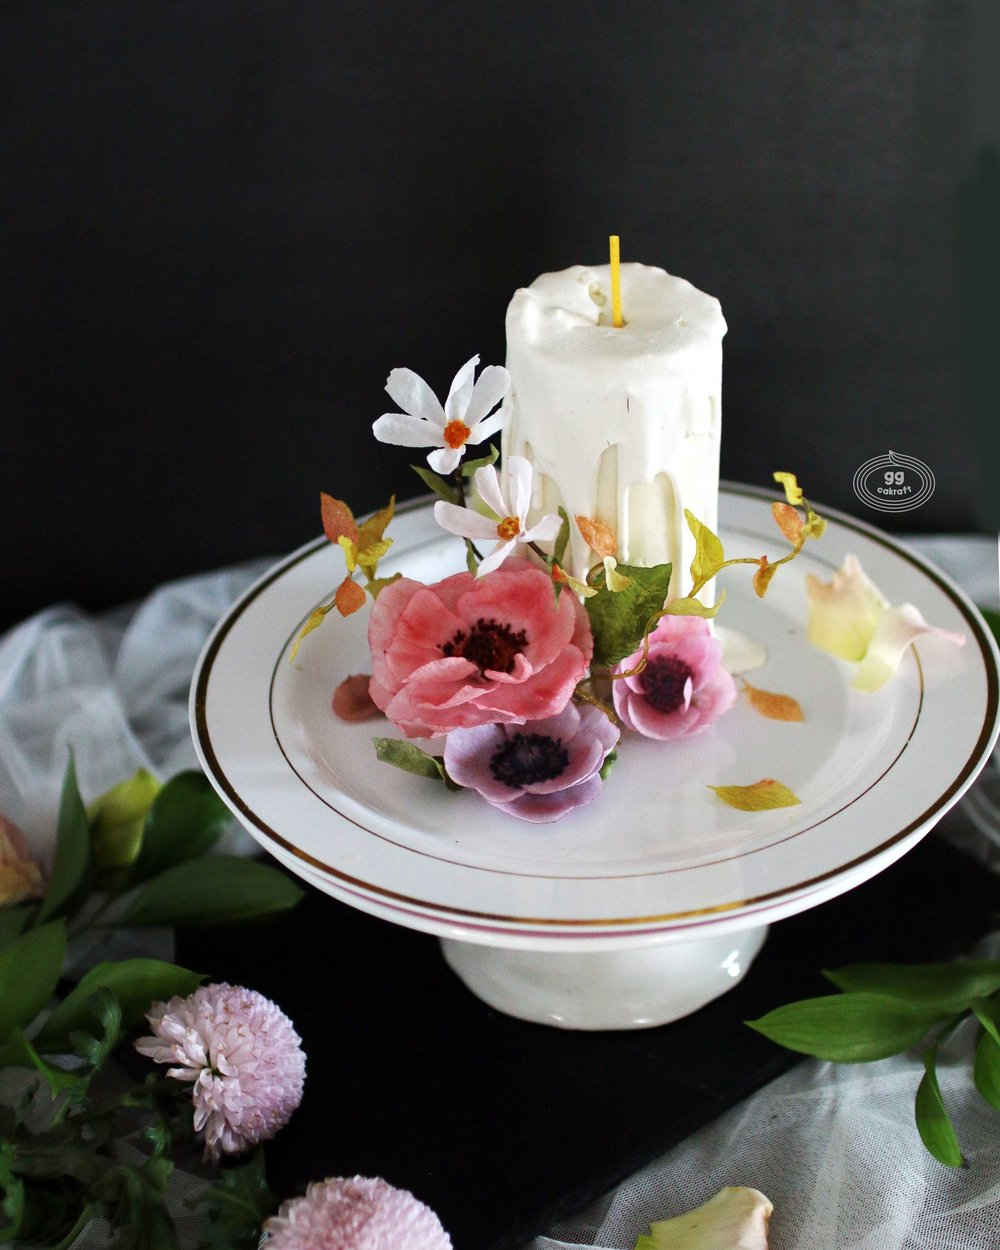 Candle cake X Wafer pafer flower  Anemone, Cosmos, 3D leaf, 3D stem